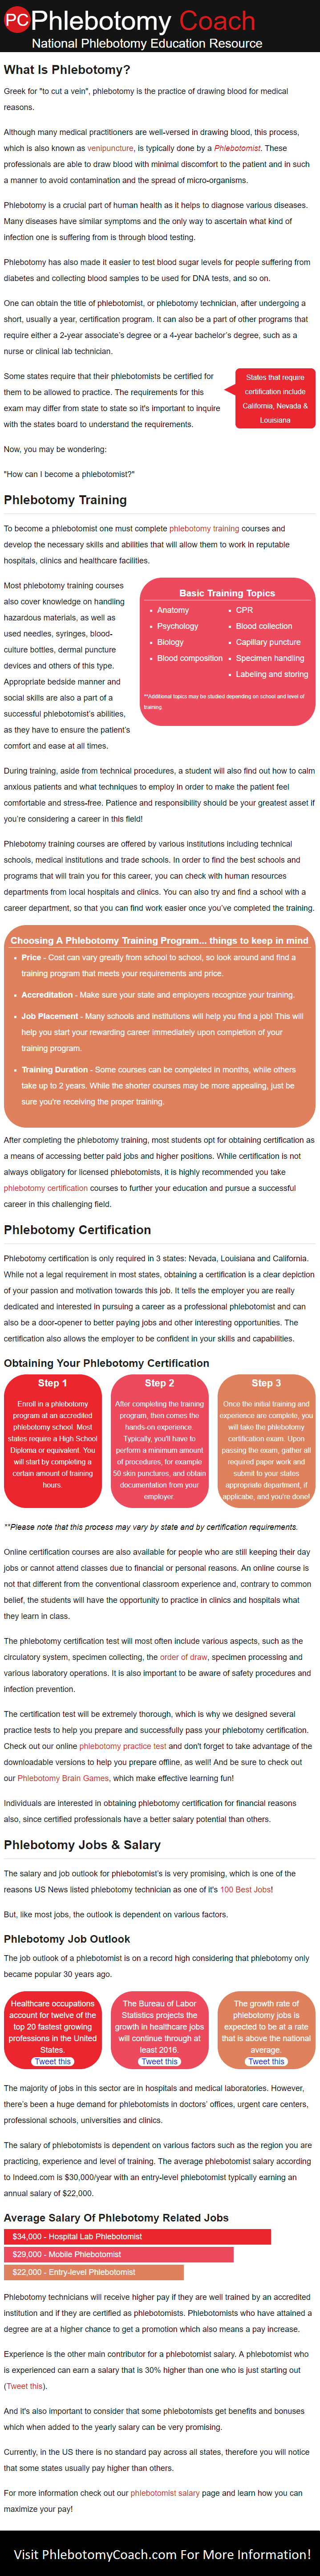 Updated The Webs Leading Resource For Phlebotomy Training